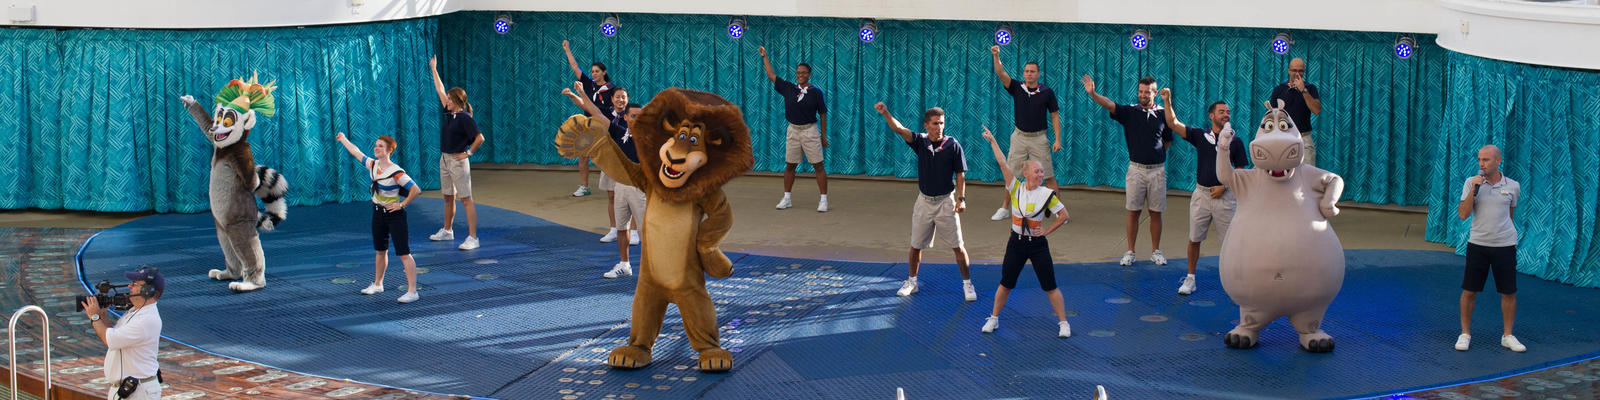 Dreamworks characters performing at the AquaTheater on Allure of the Seas (Photo: Cruise Critic)